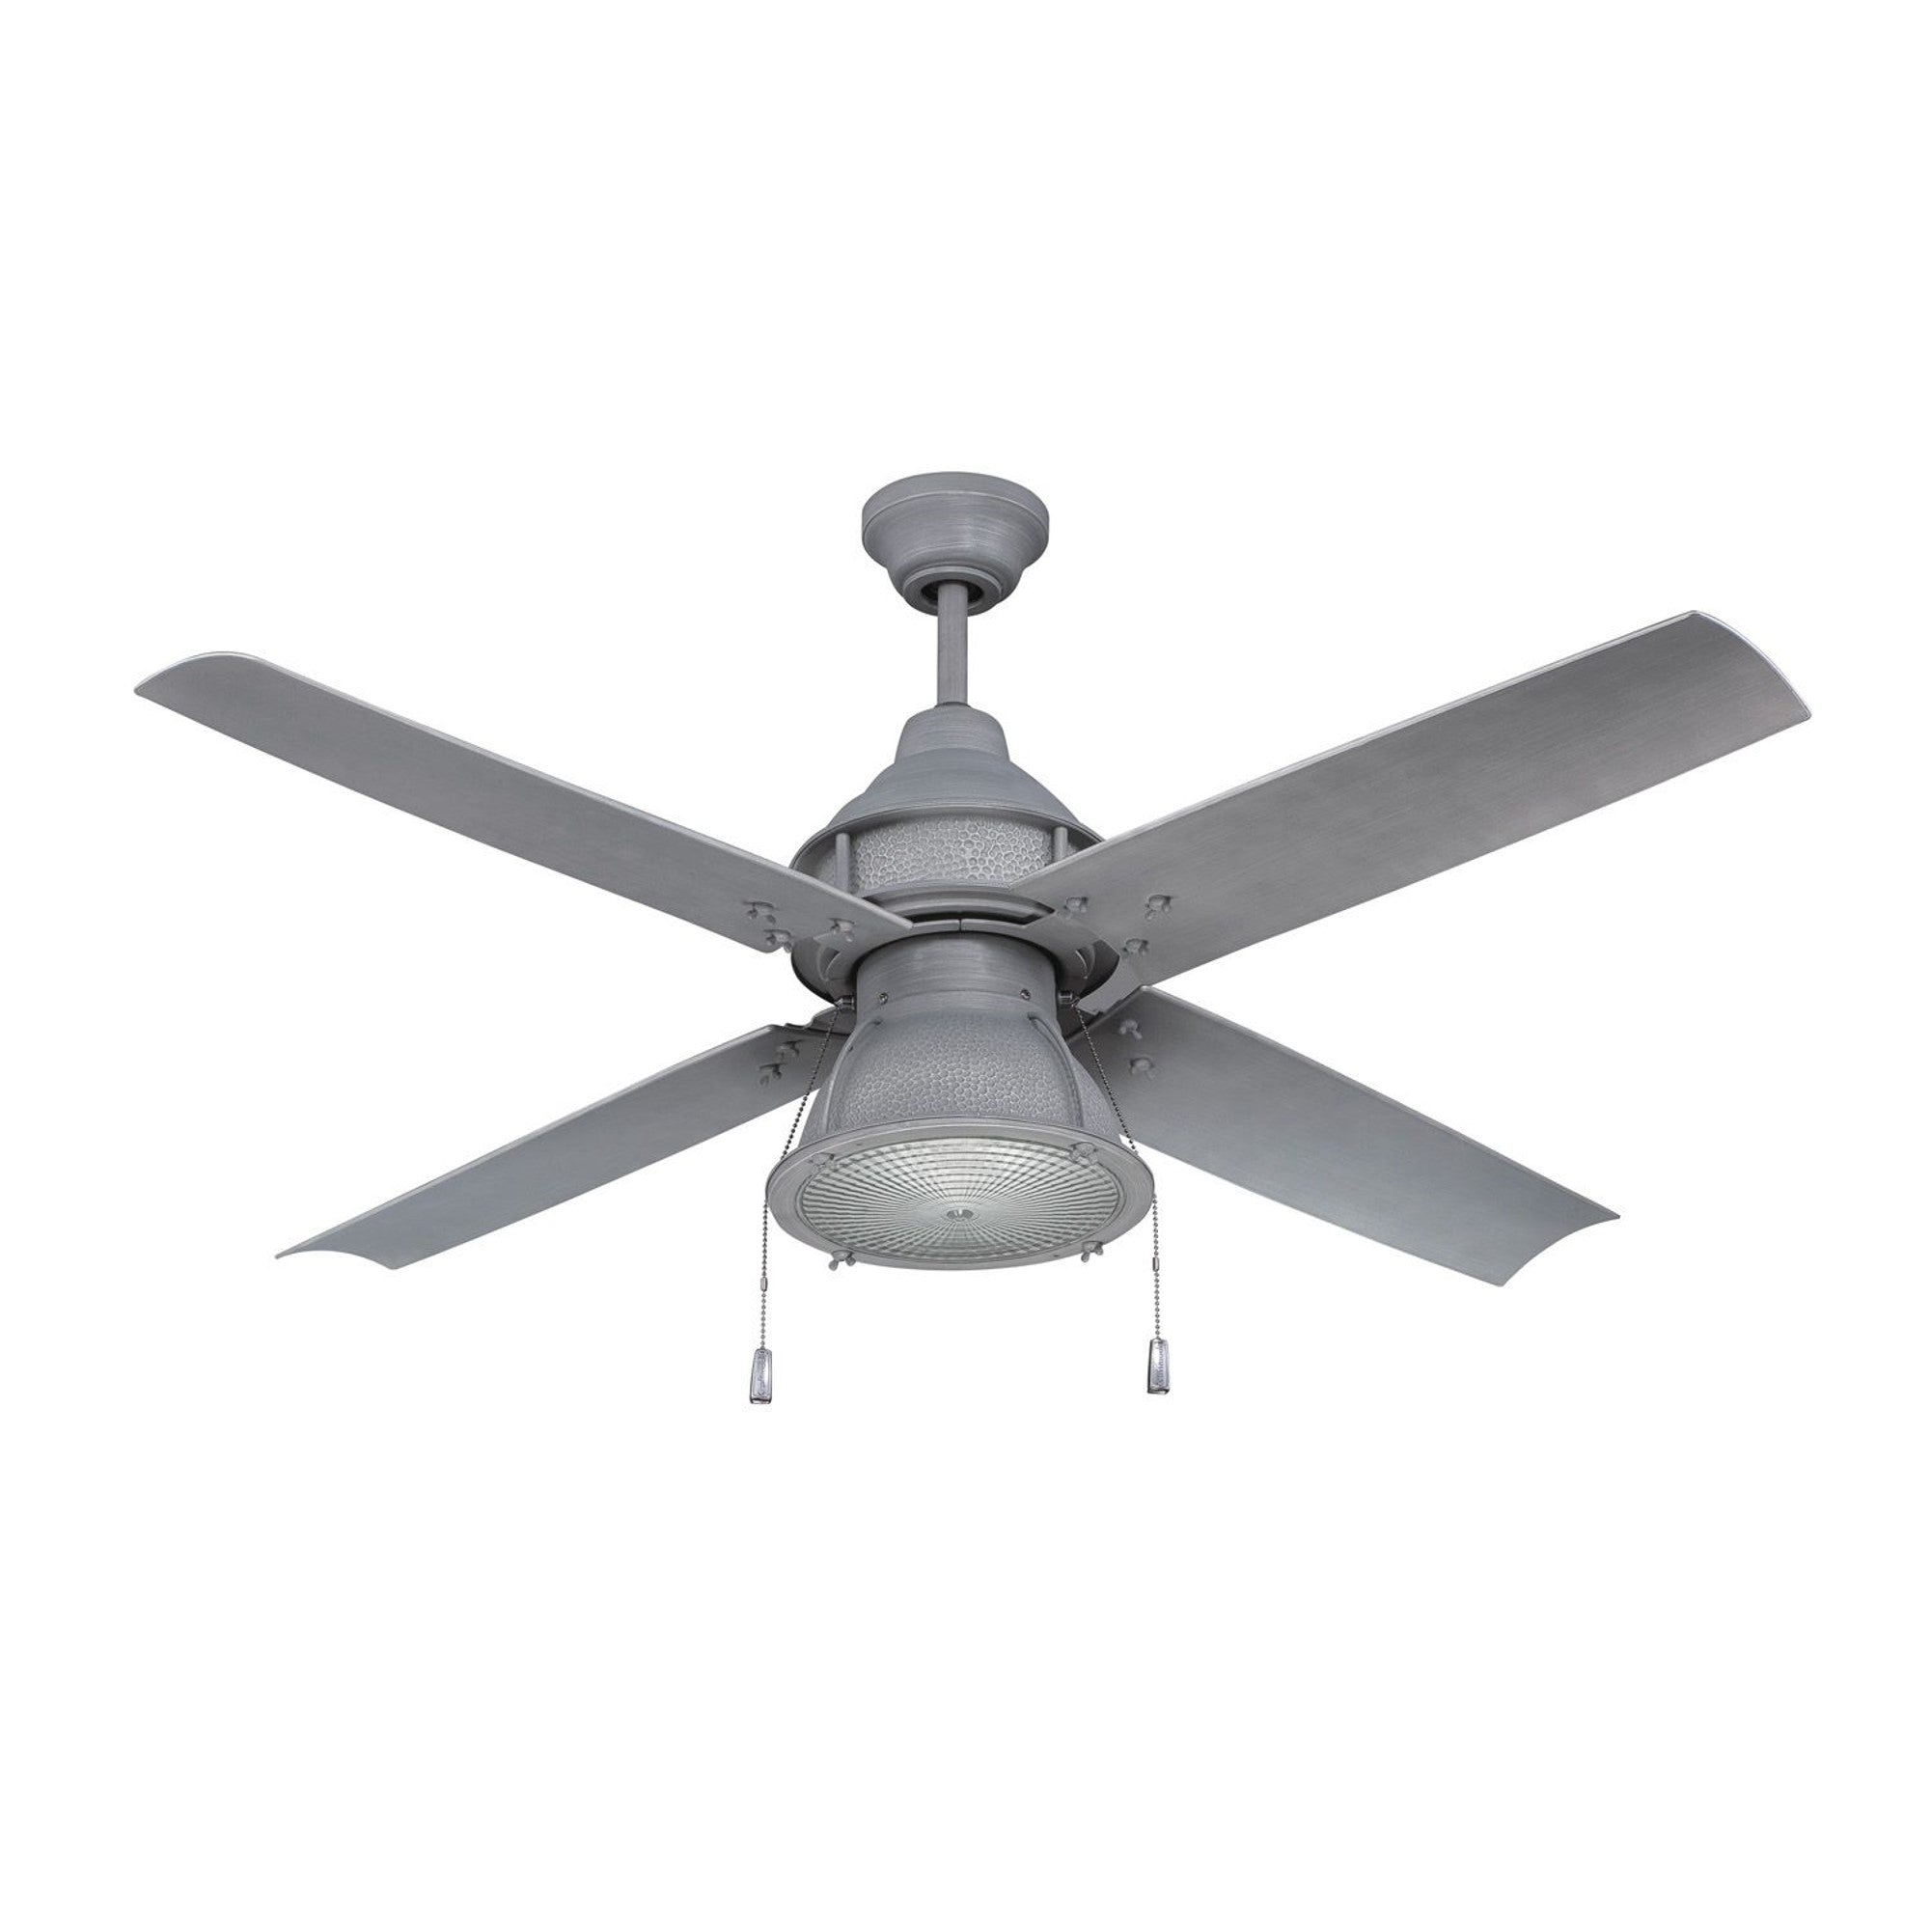 garage d mfg fans advantage outdoor tools indoor shop j exclusive northern fan dia industrial ceiling galvanized category tool